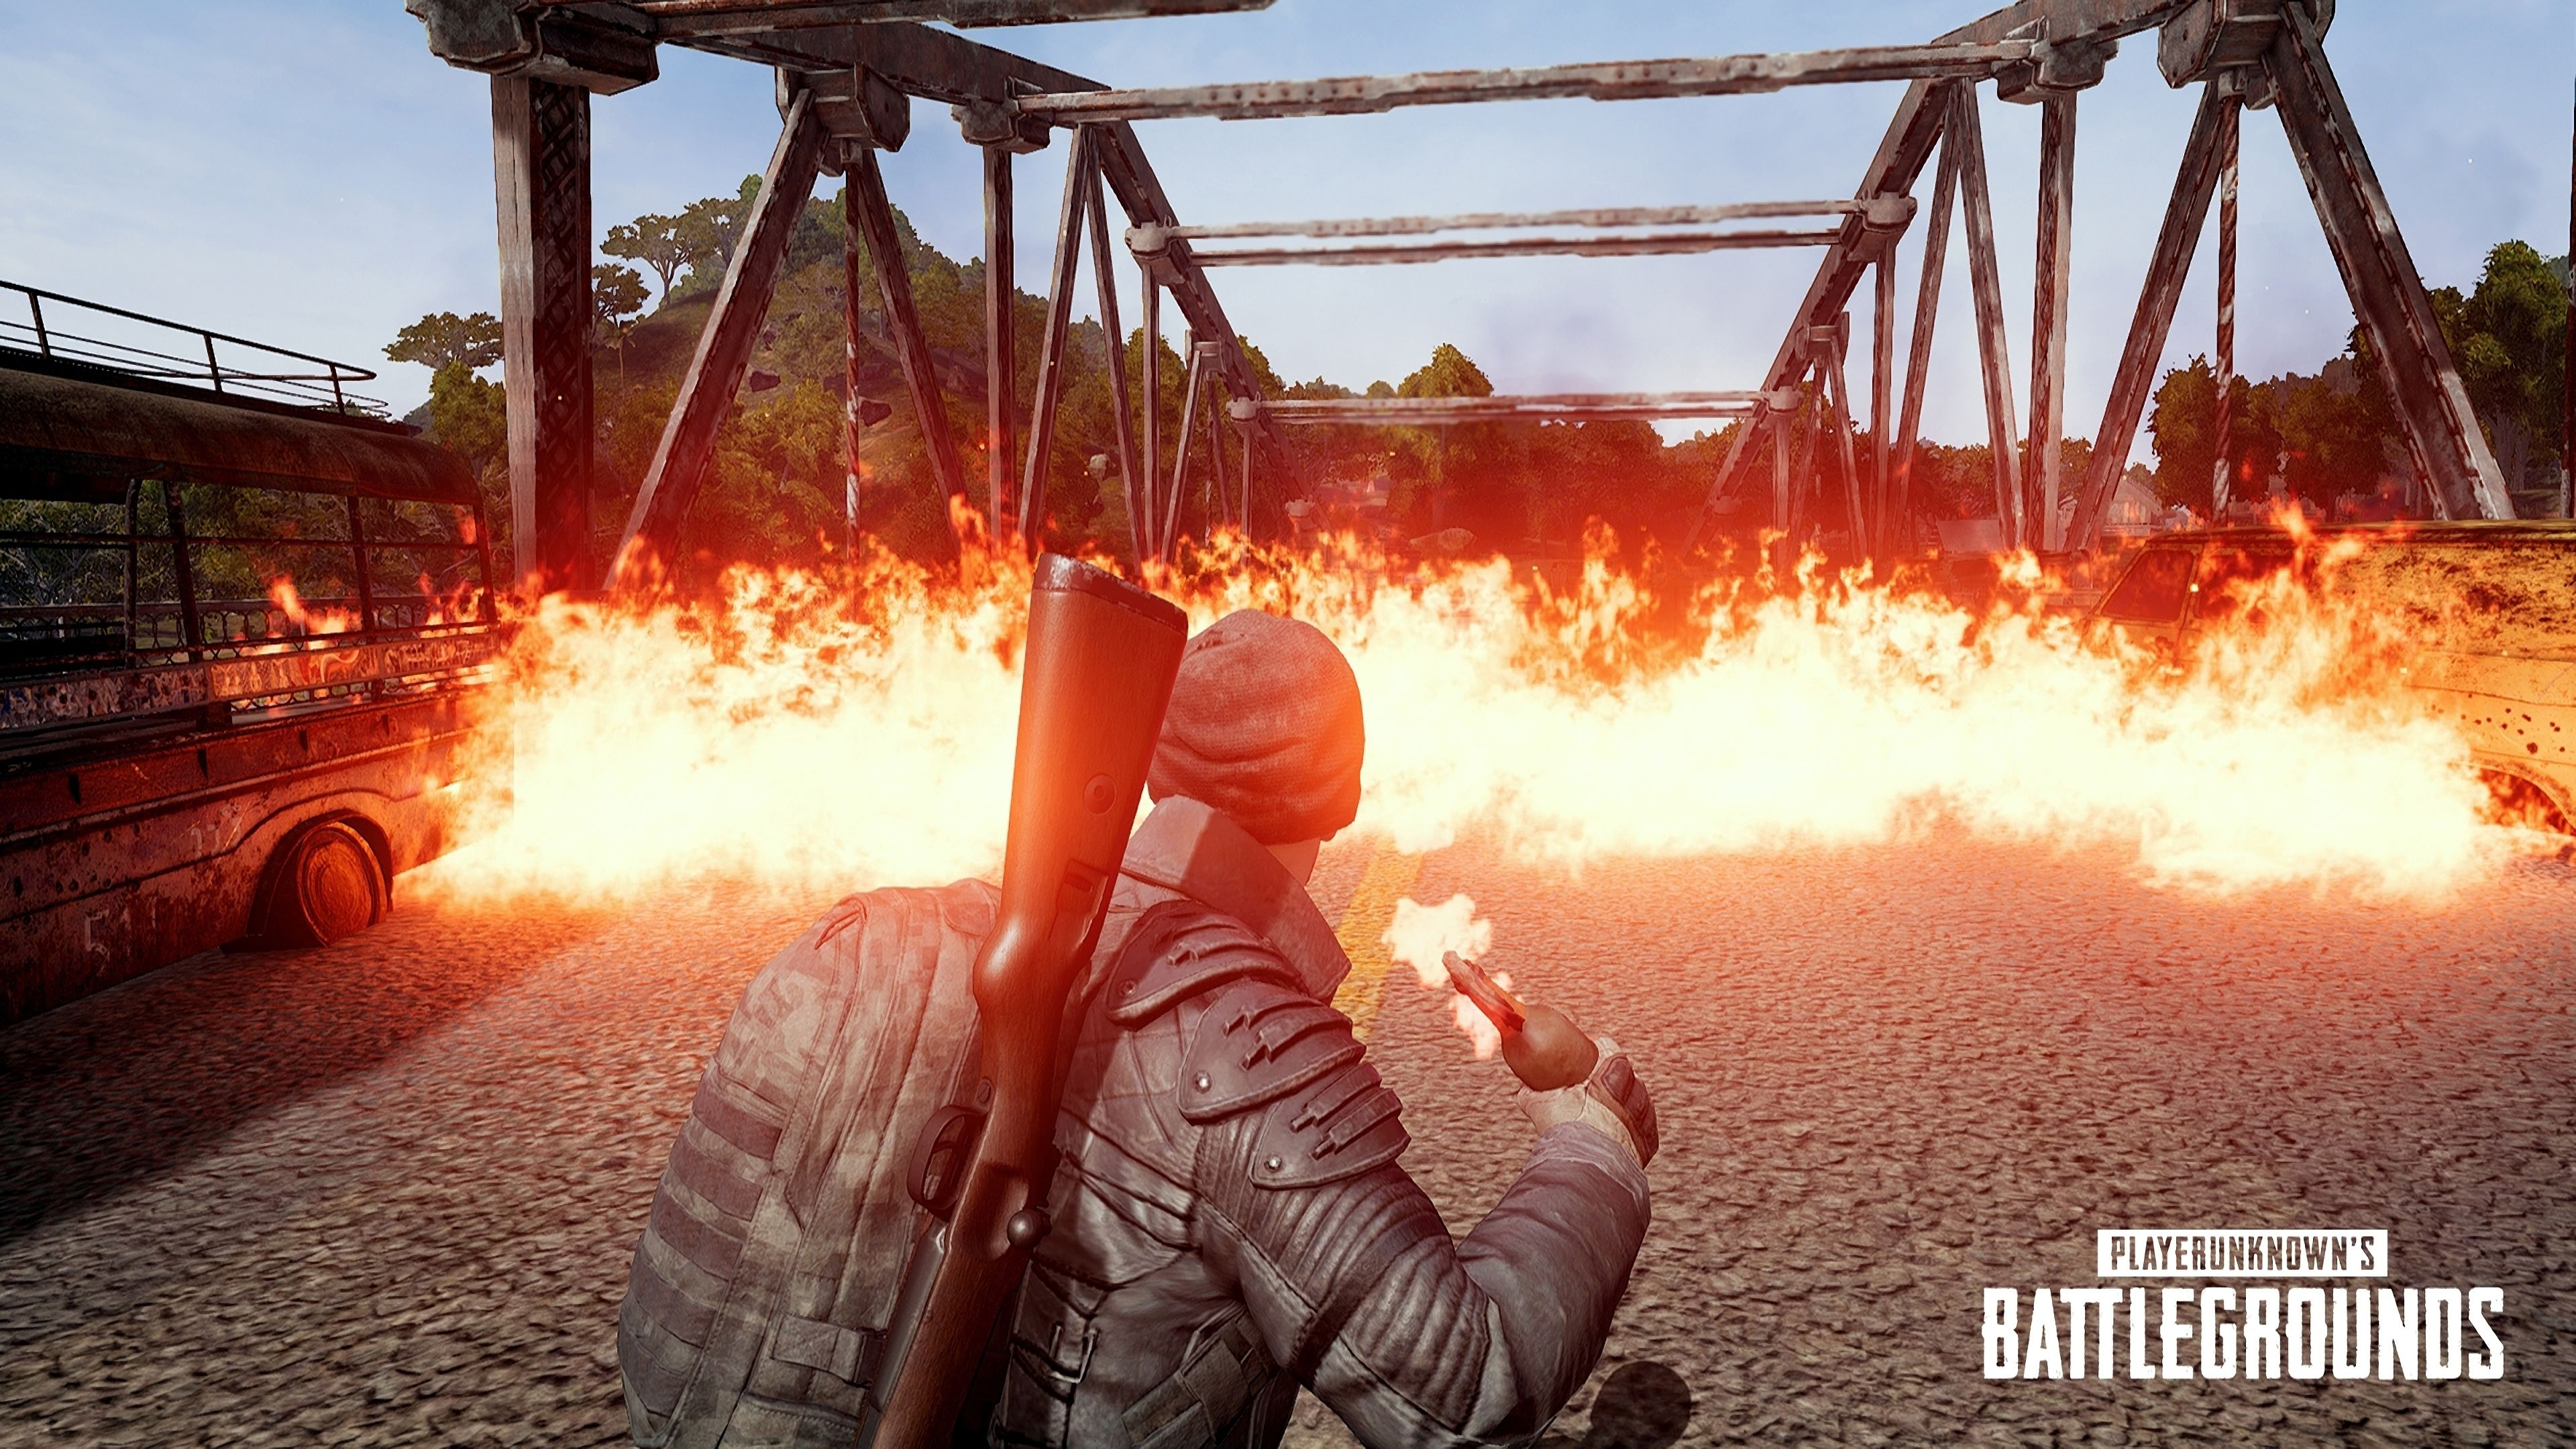 Pin On Playerunknown S Battlegrounds 4k Wallpapers